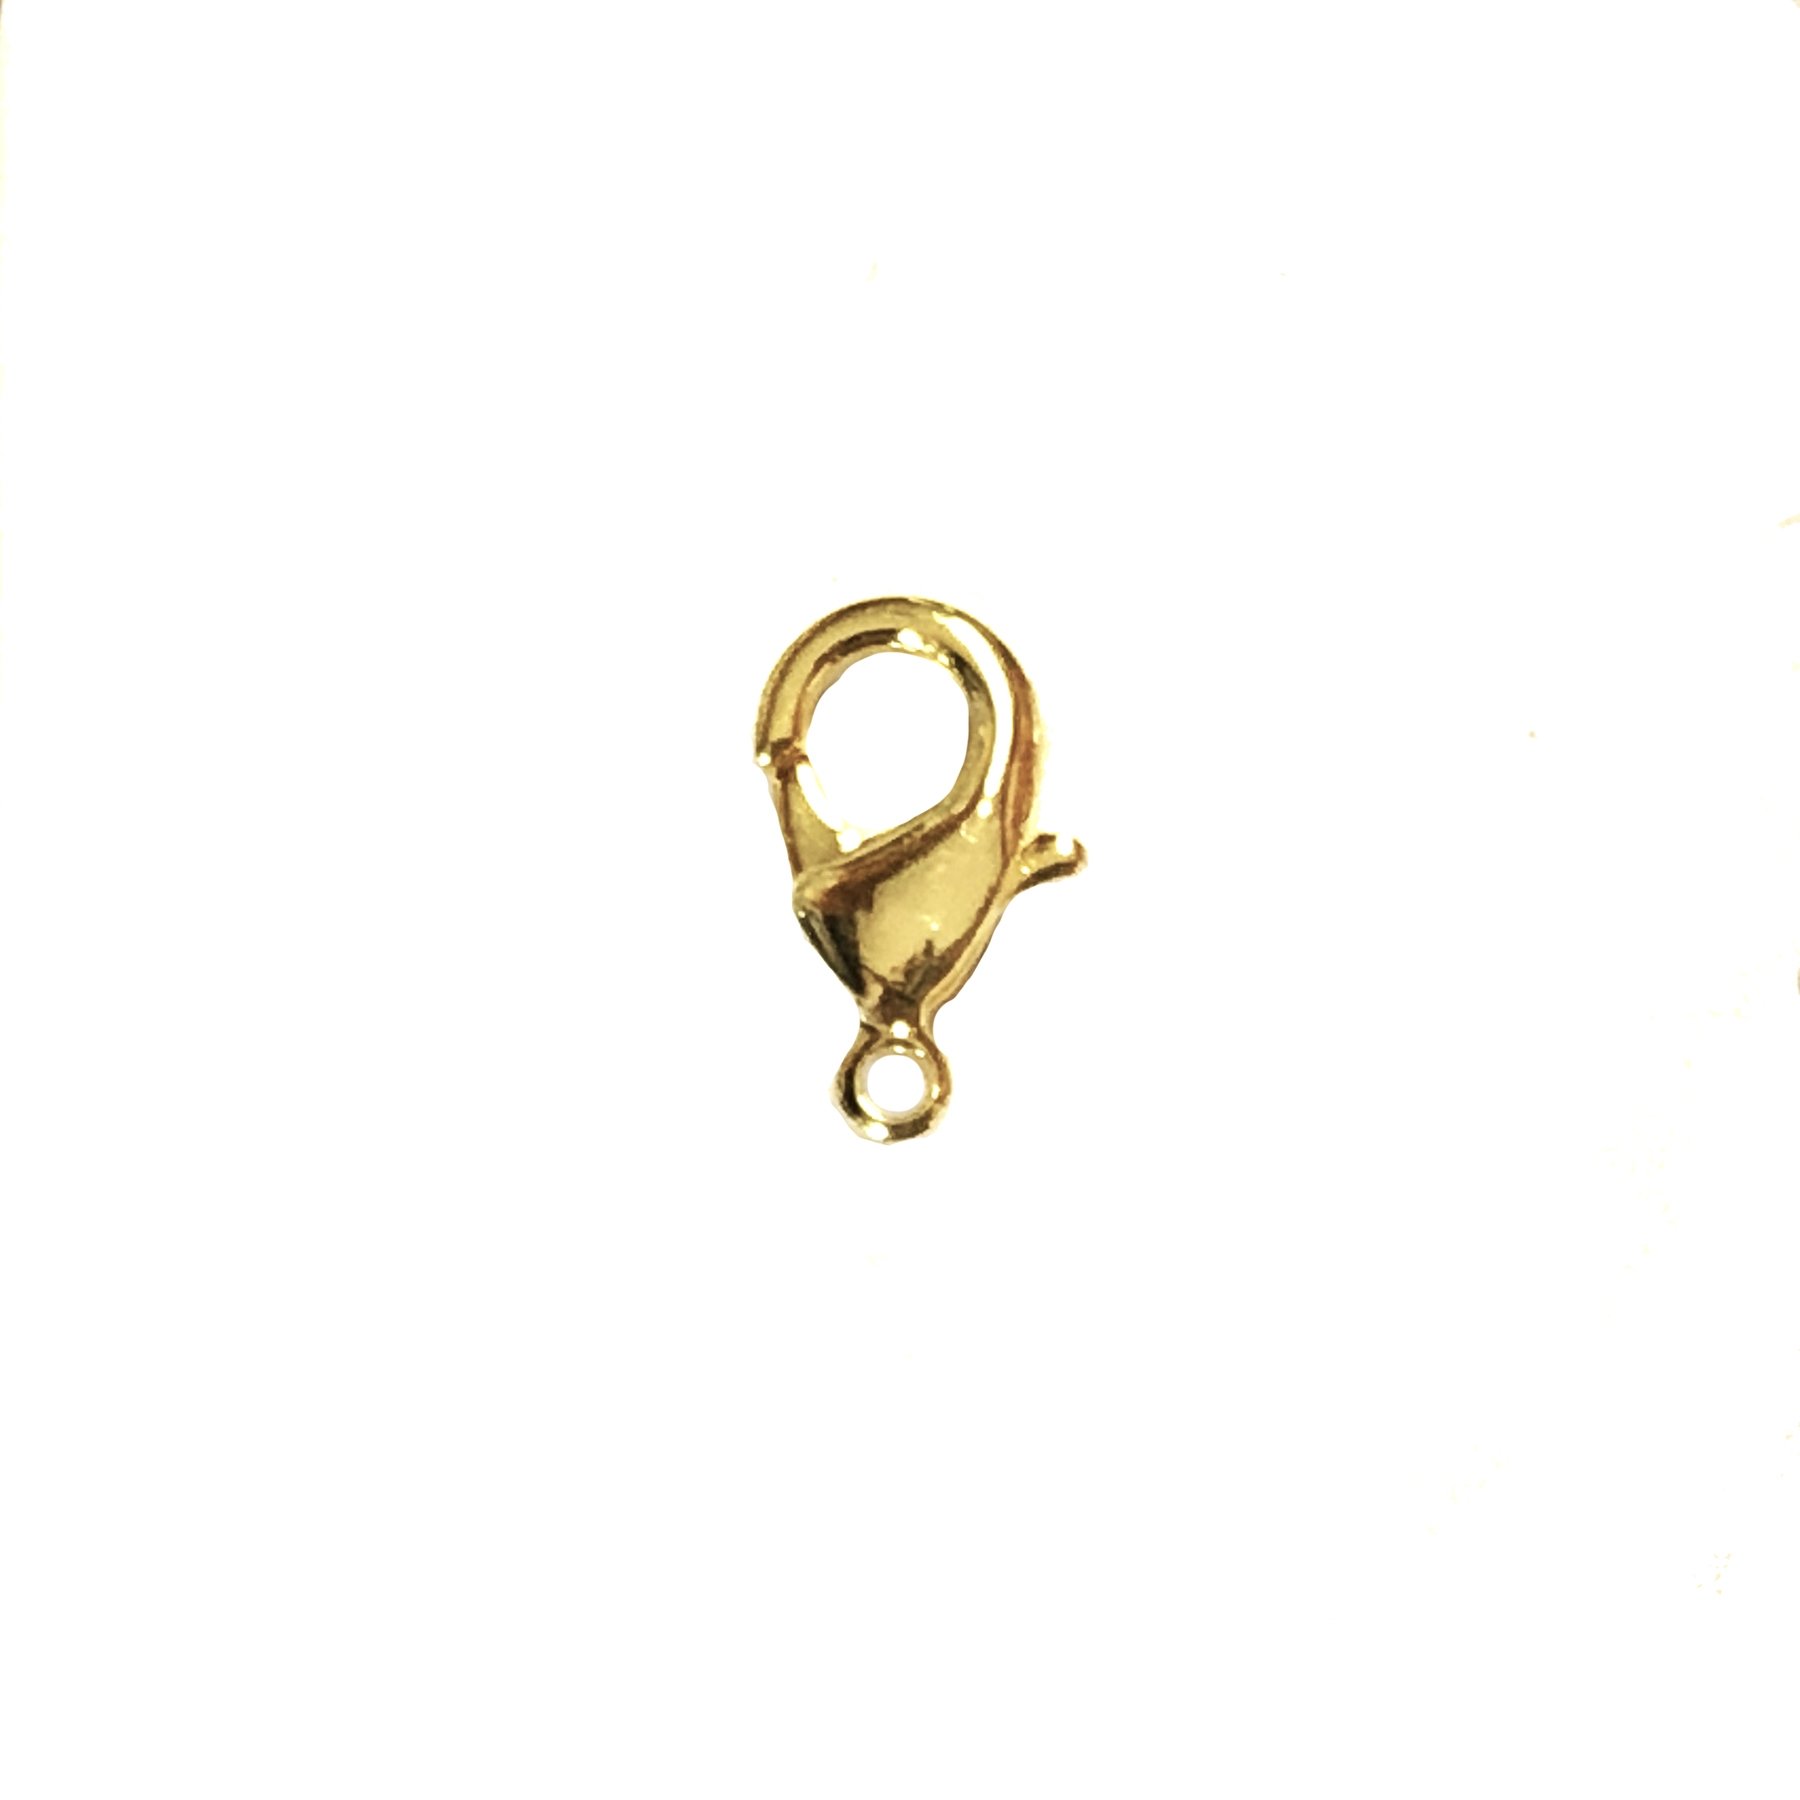 lobster claw clasp, lobster clasp, clasp, gold, brass, claw, connector, 15mm, gold clasp, gold plated, us made, nickel free, clasp findings, B'sue Boutiques, jewelry supplies, vintage supplies, jewelry findings, jewelry making, 04870